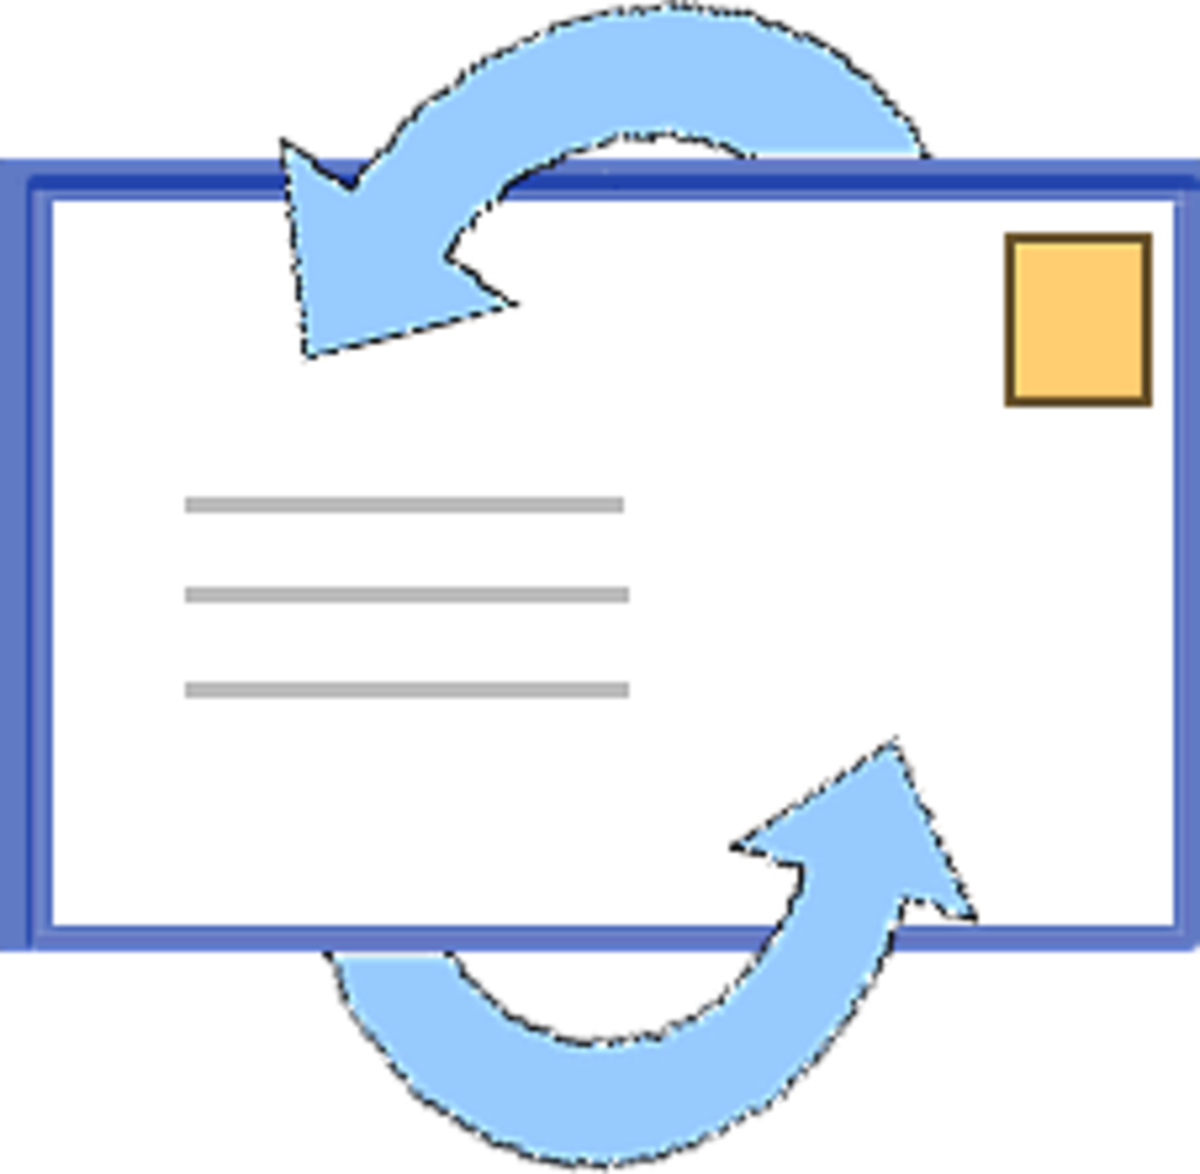 Outlook Express, an email program